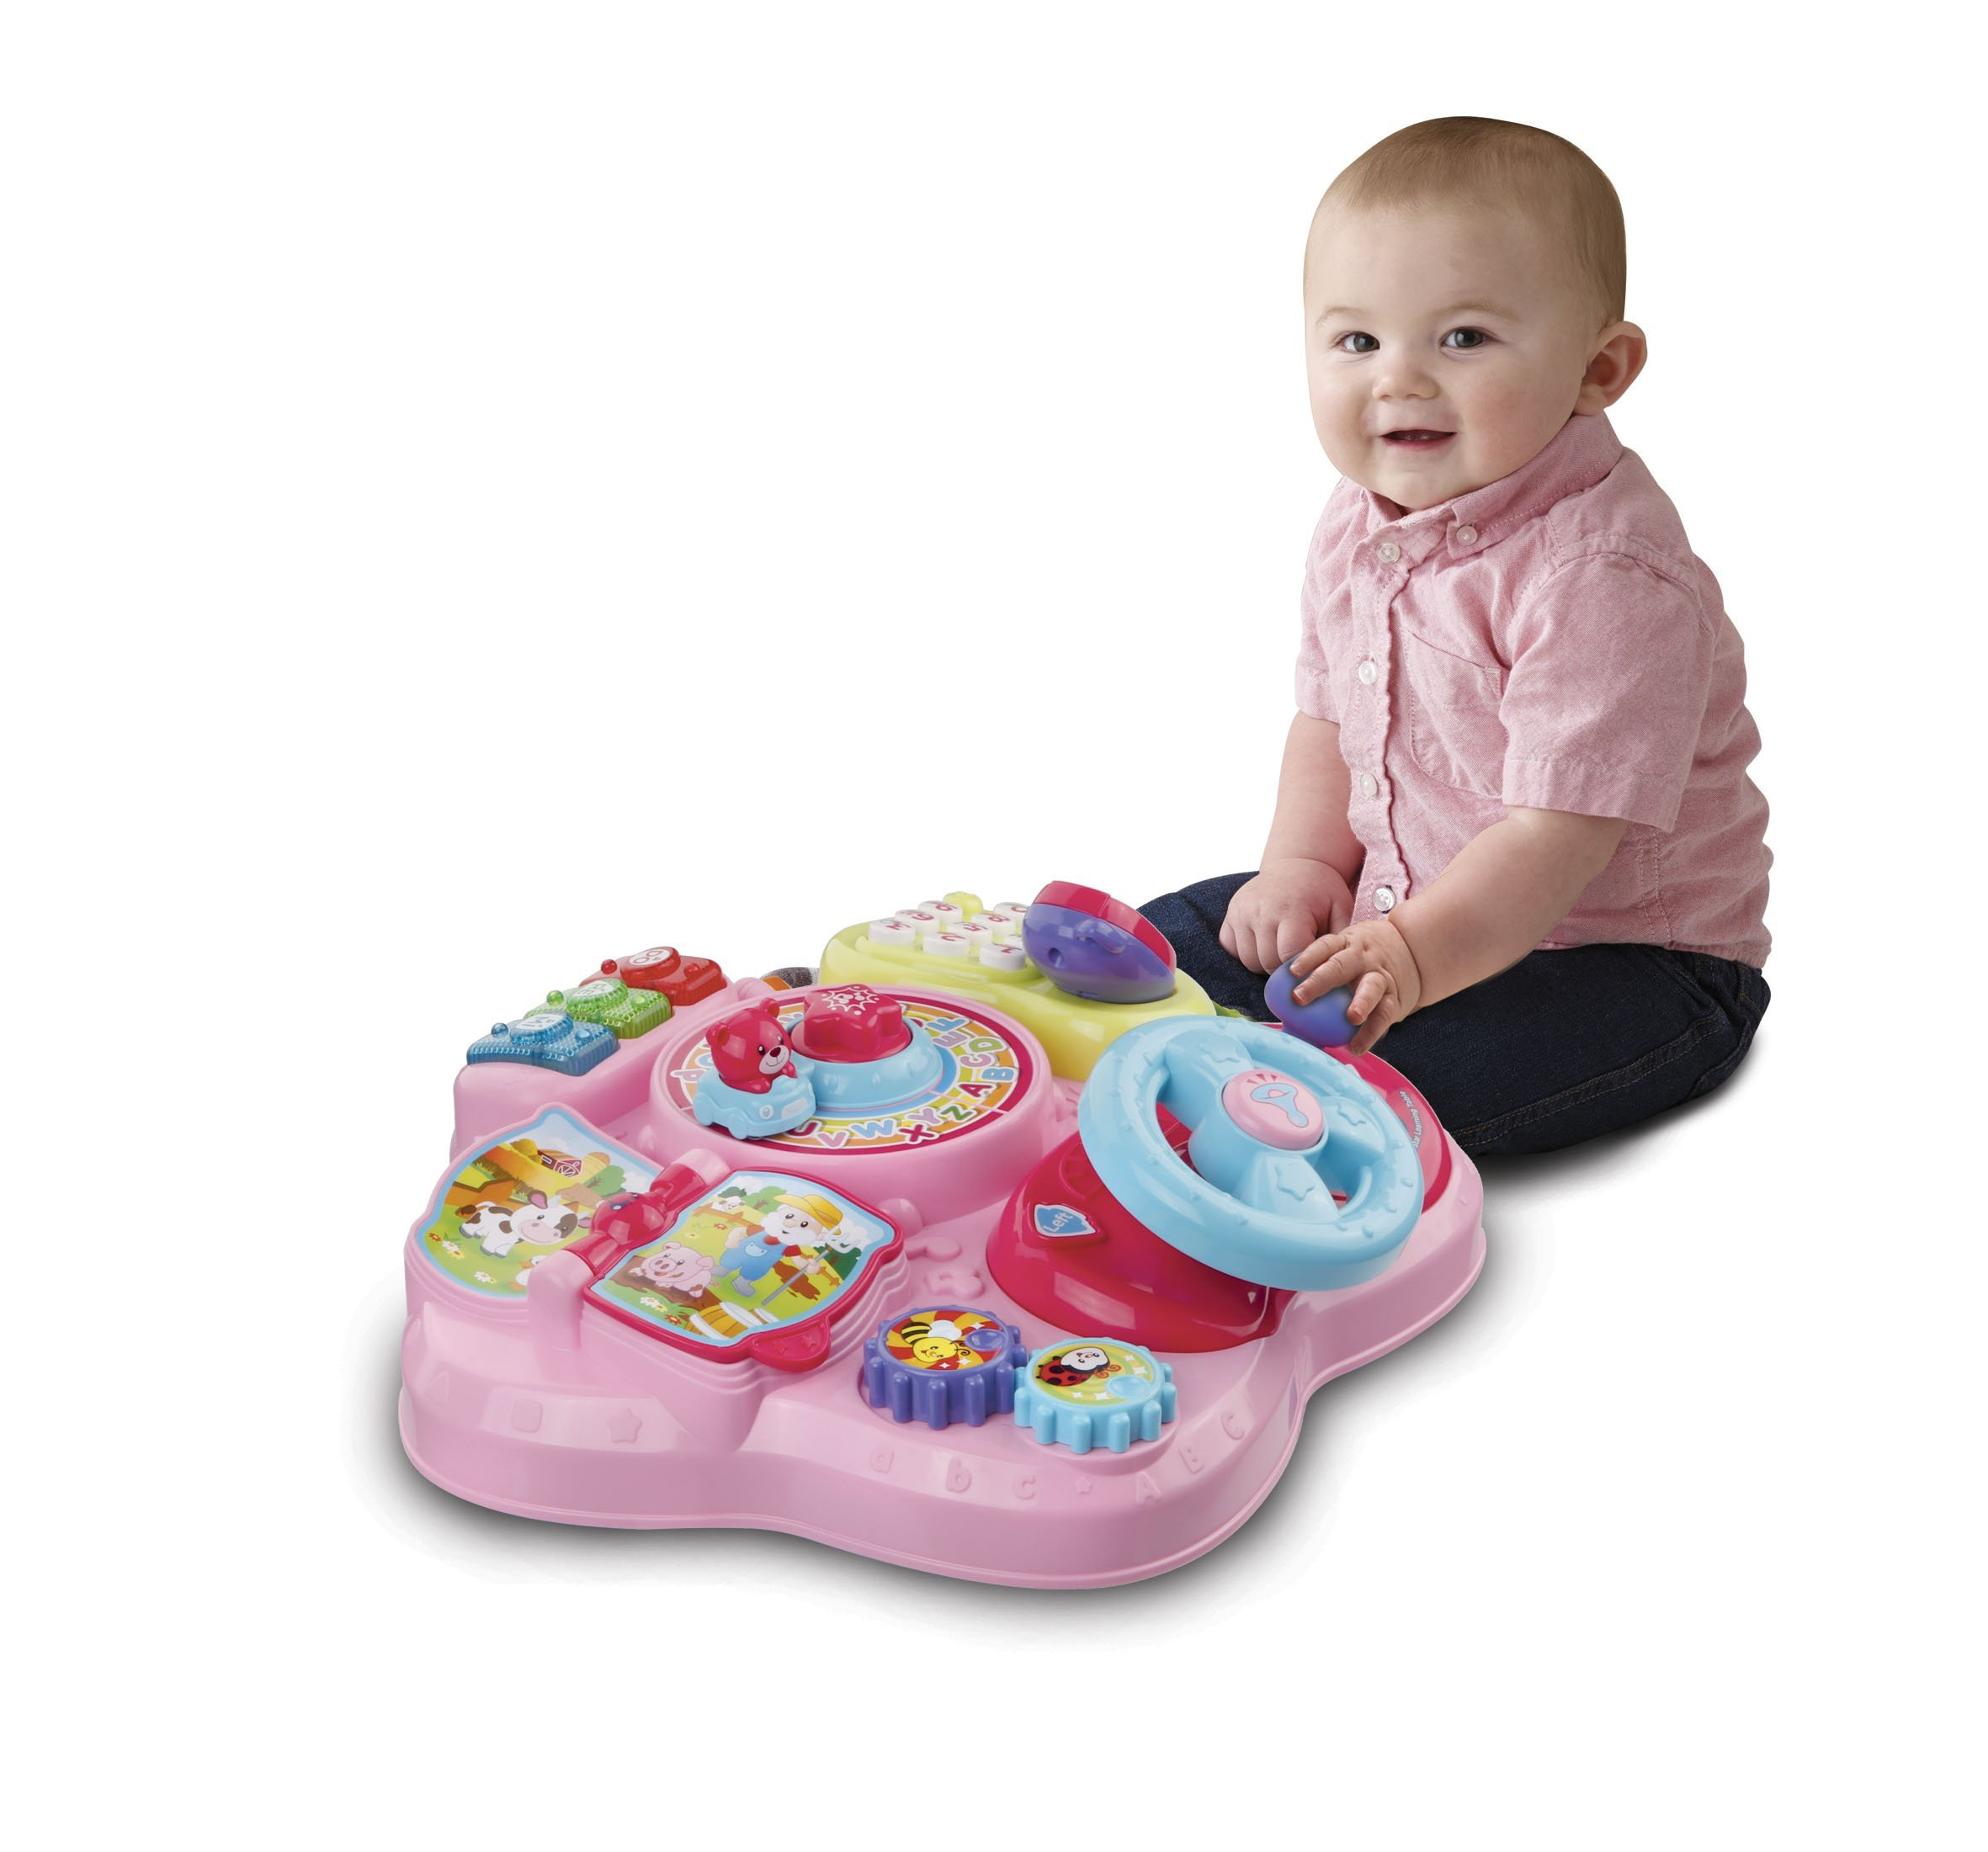 VTech Magic Star Learning Table, Pink (Frustration Free Packaging) by VTech (Image #3)